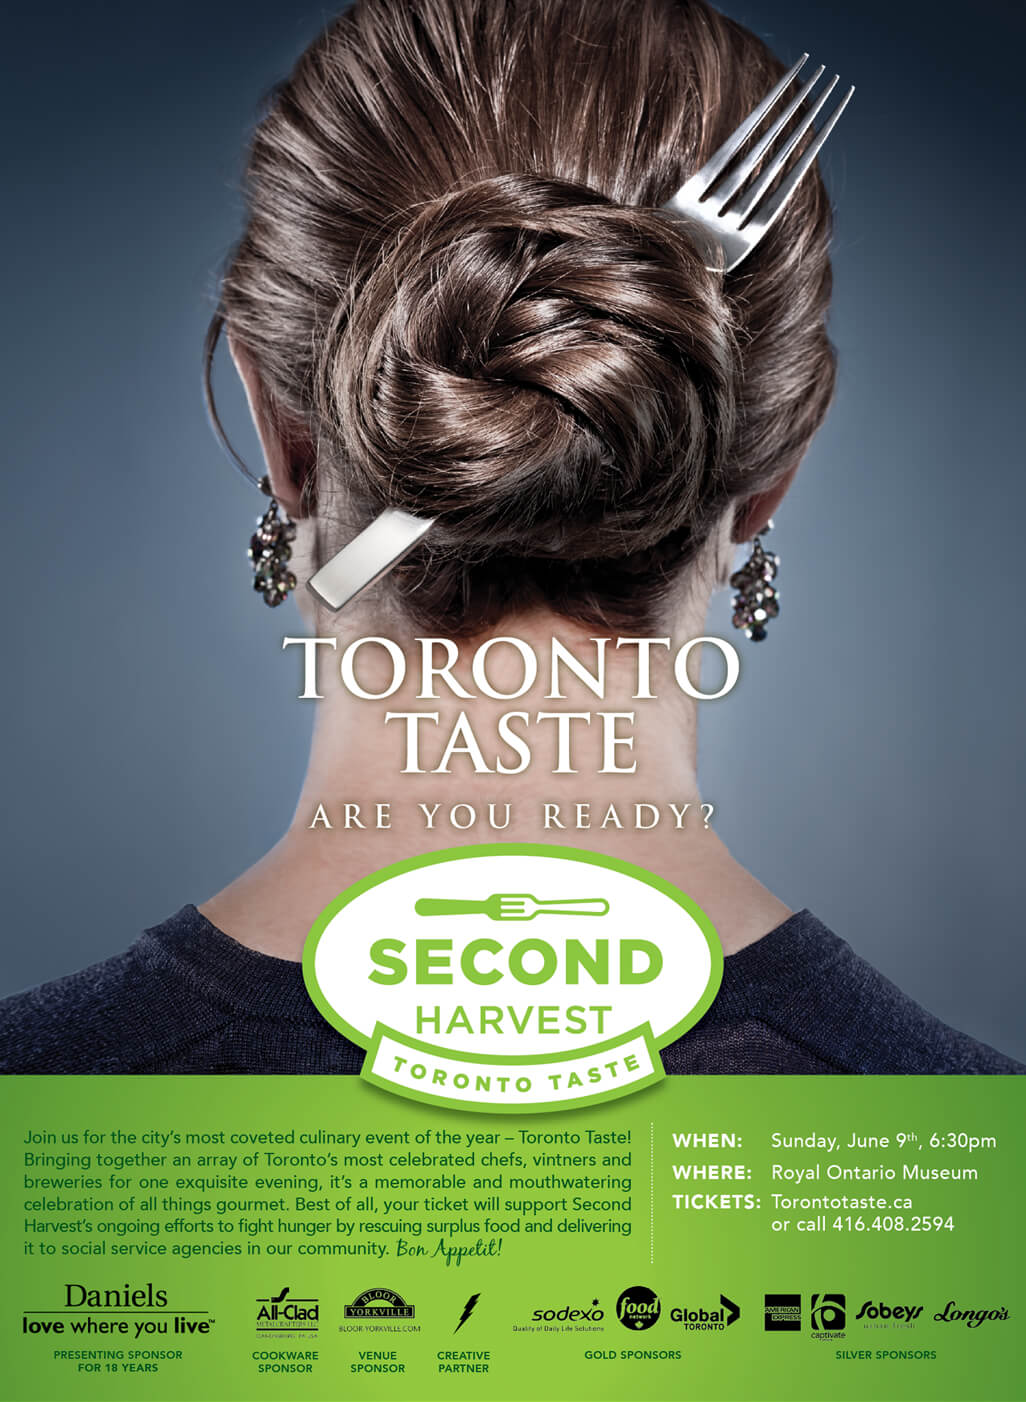 Poster of Second Harvest's Toronto Taste Festival showing a lady with a fork in her hair.